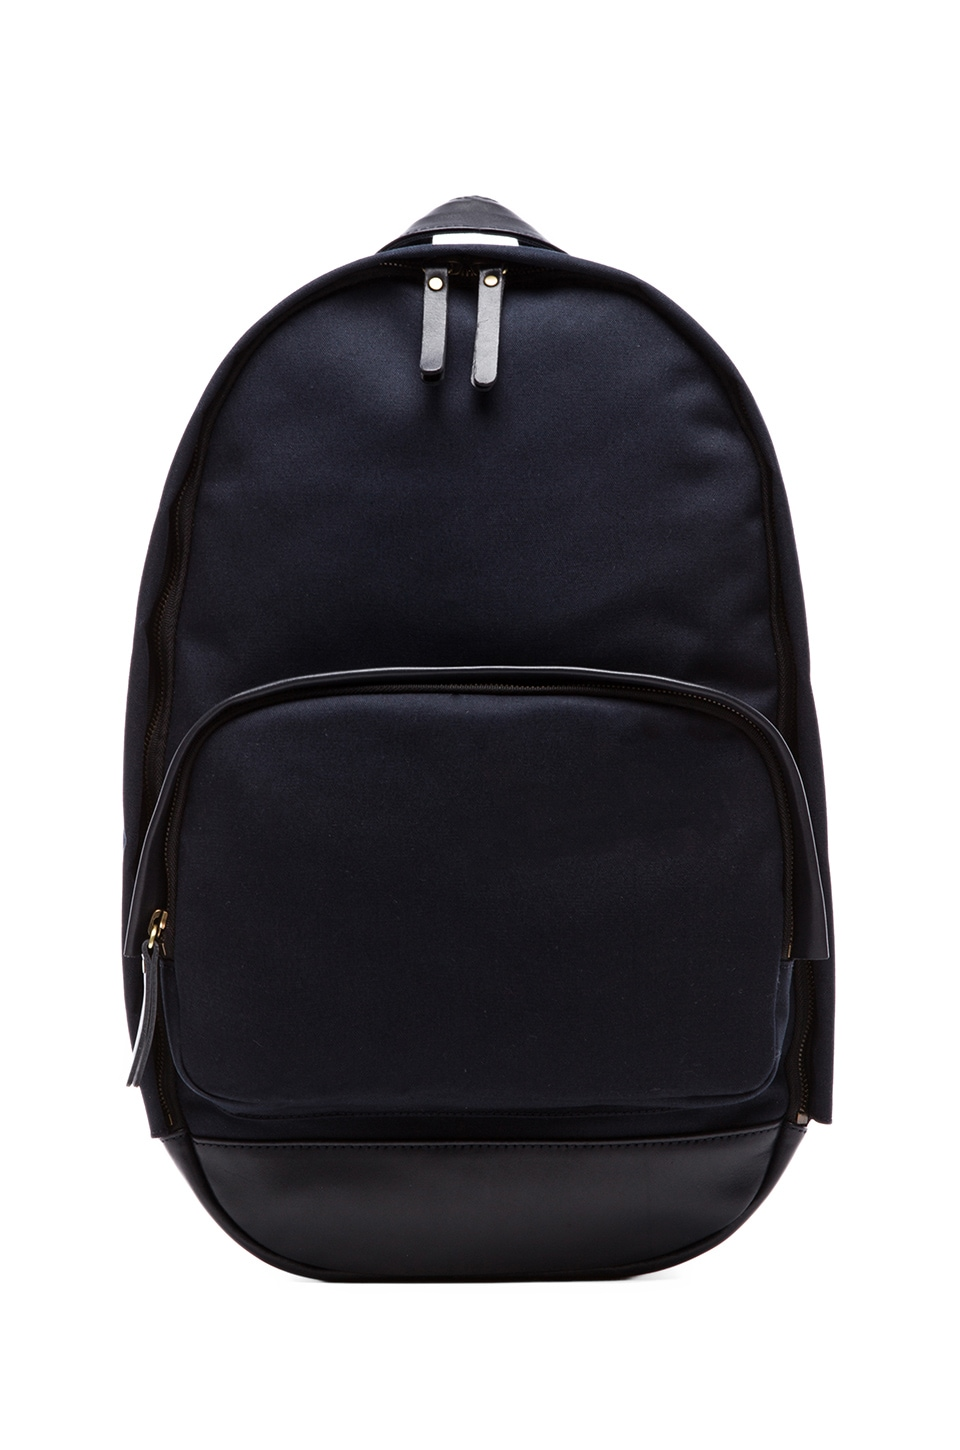 Haerfest F1 Backpack in Blue